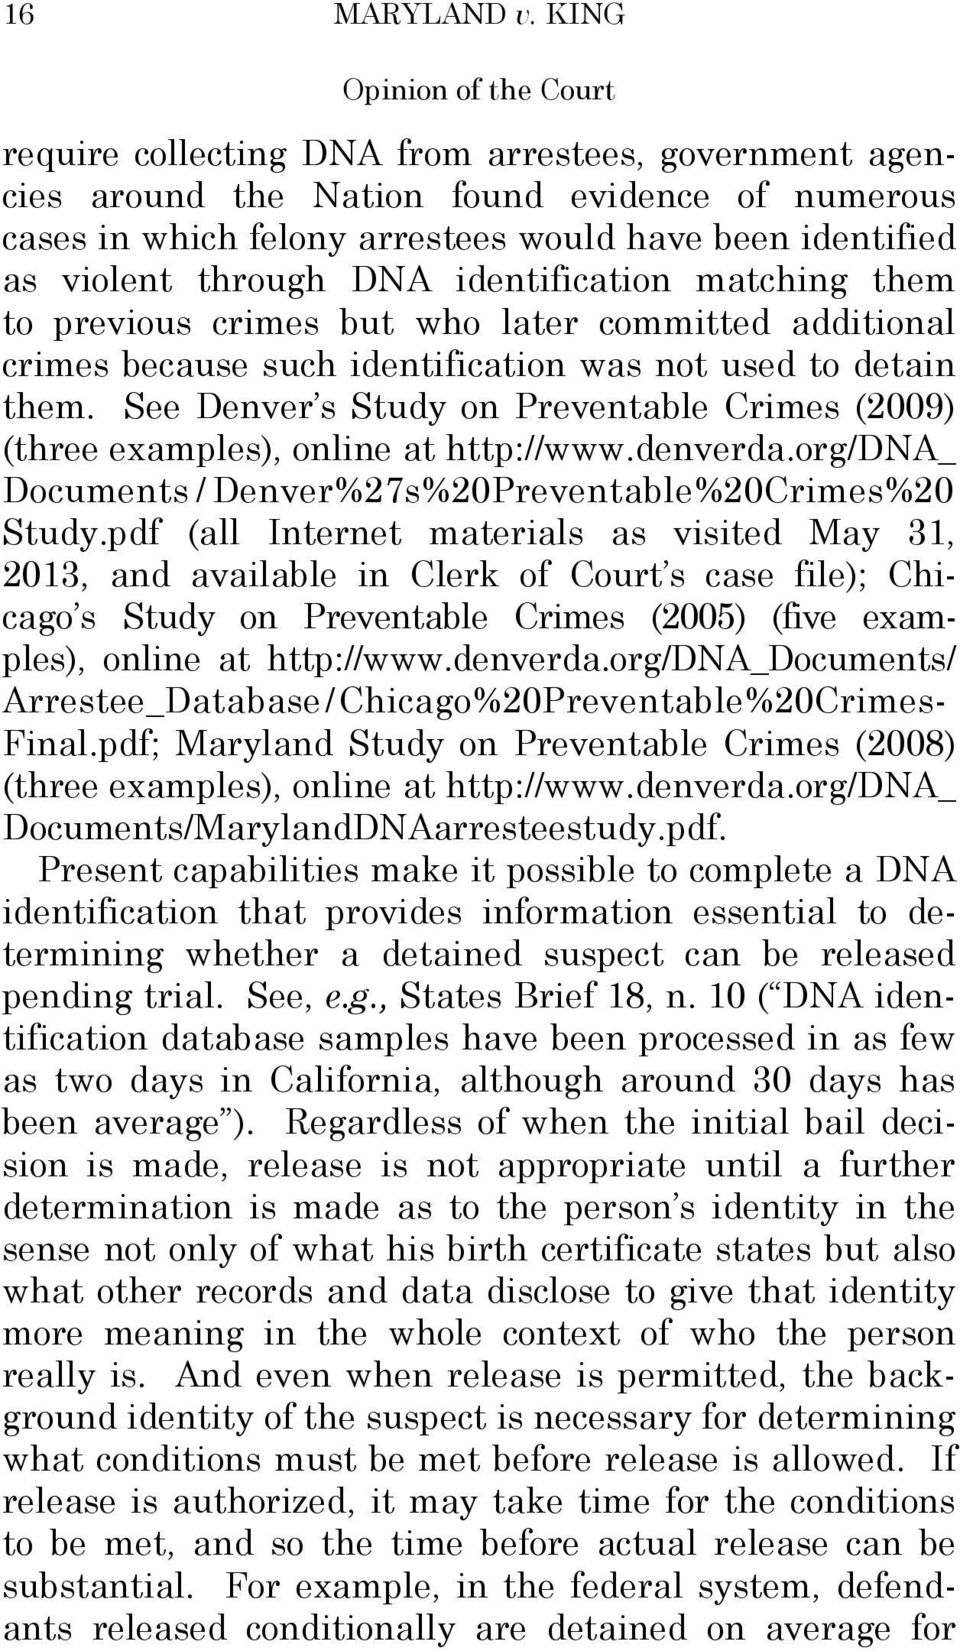 identification matching them to previous crimes but who later committed additional crimes because such identification was not used to detain them.